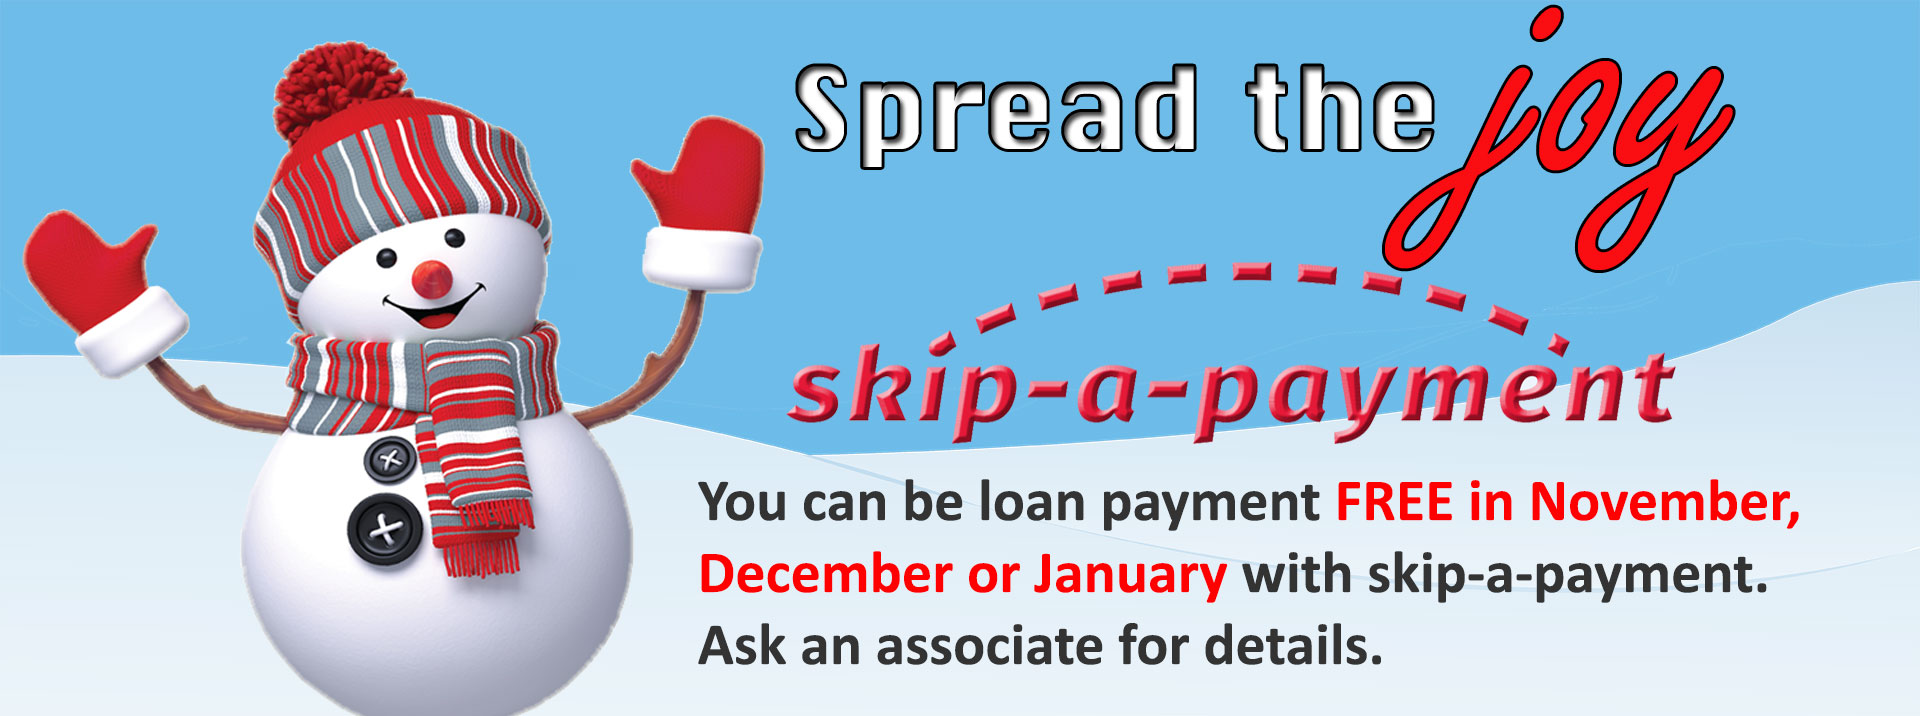 You can be loan payment FREE in November, December or January with skip-a-payment.